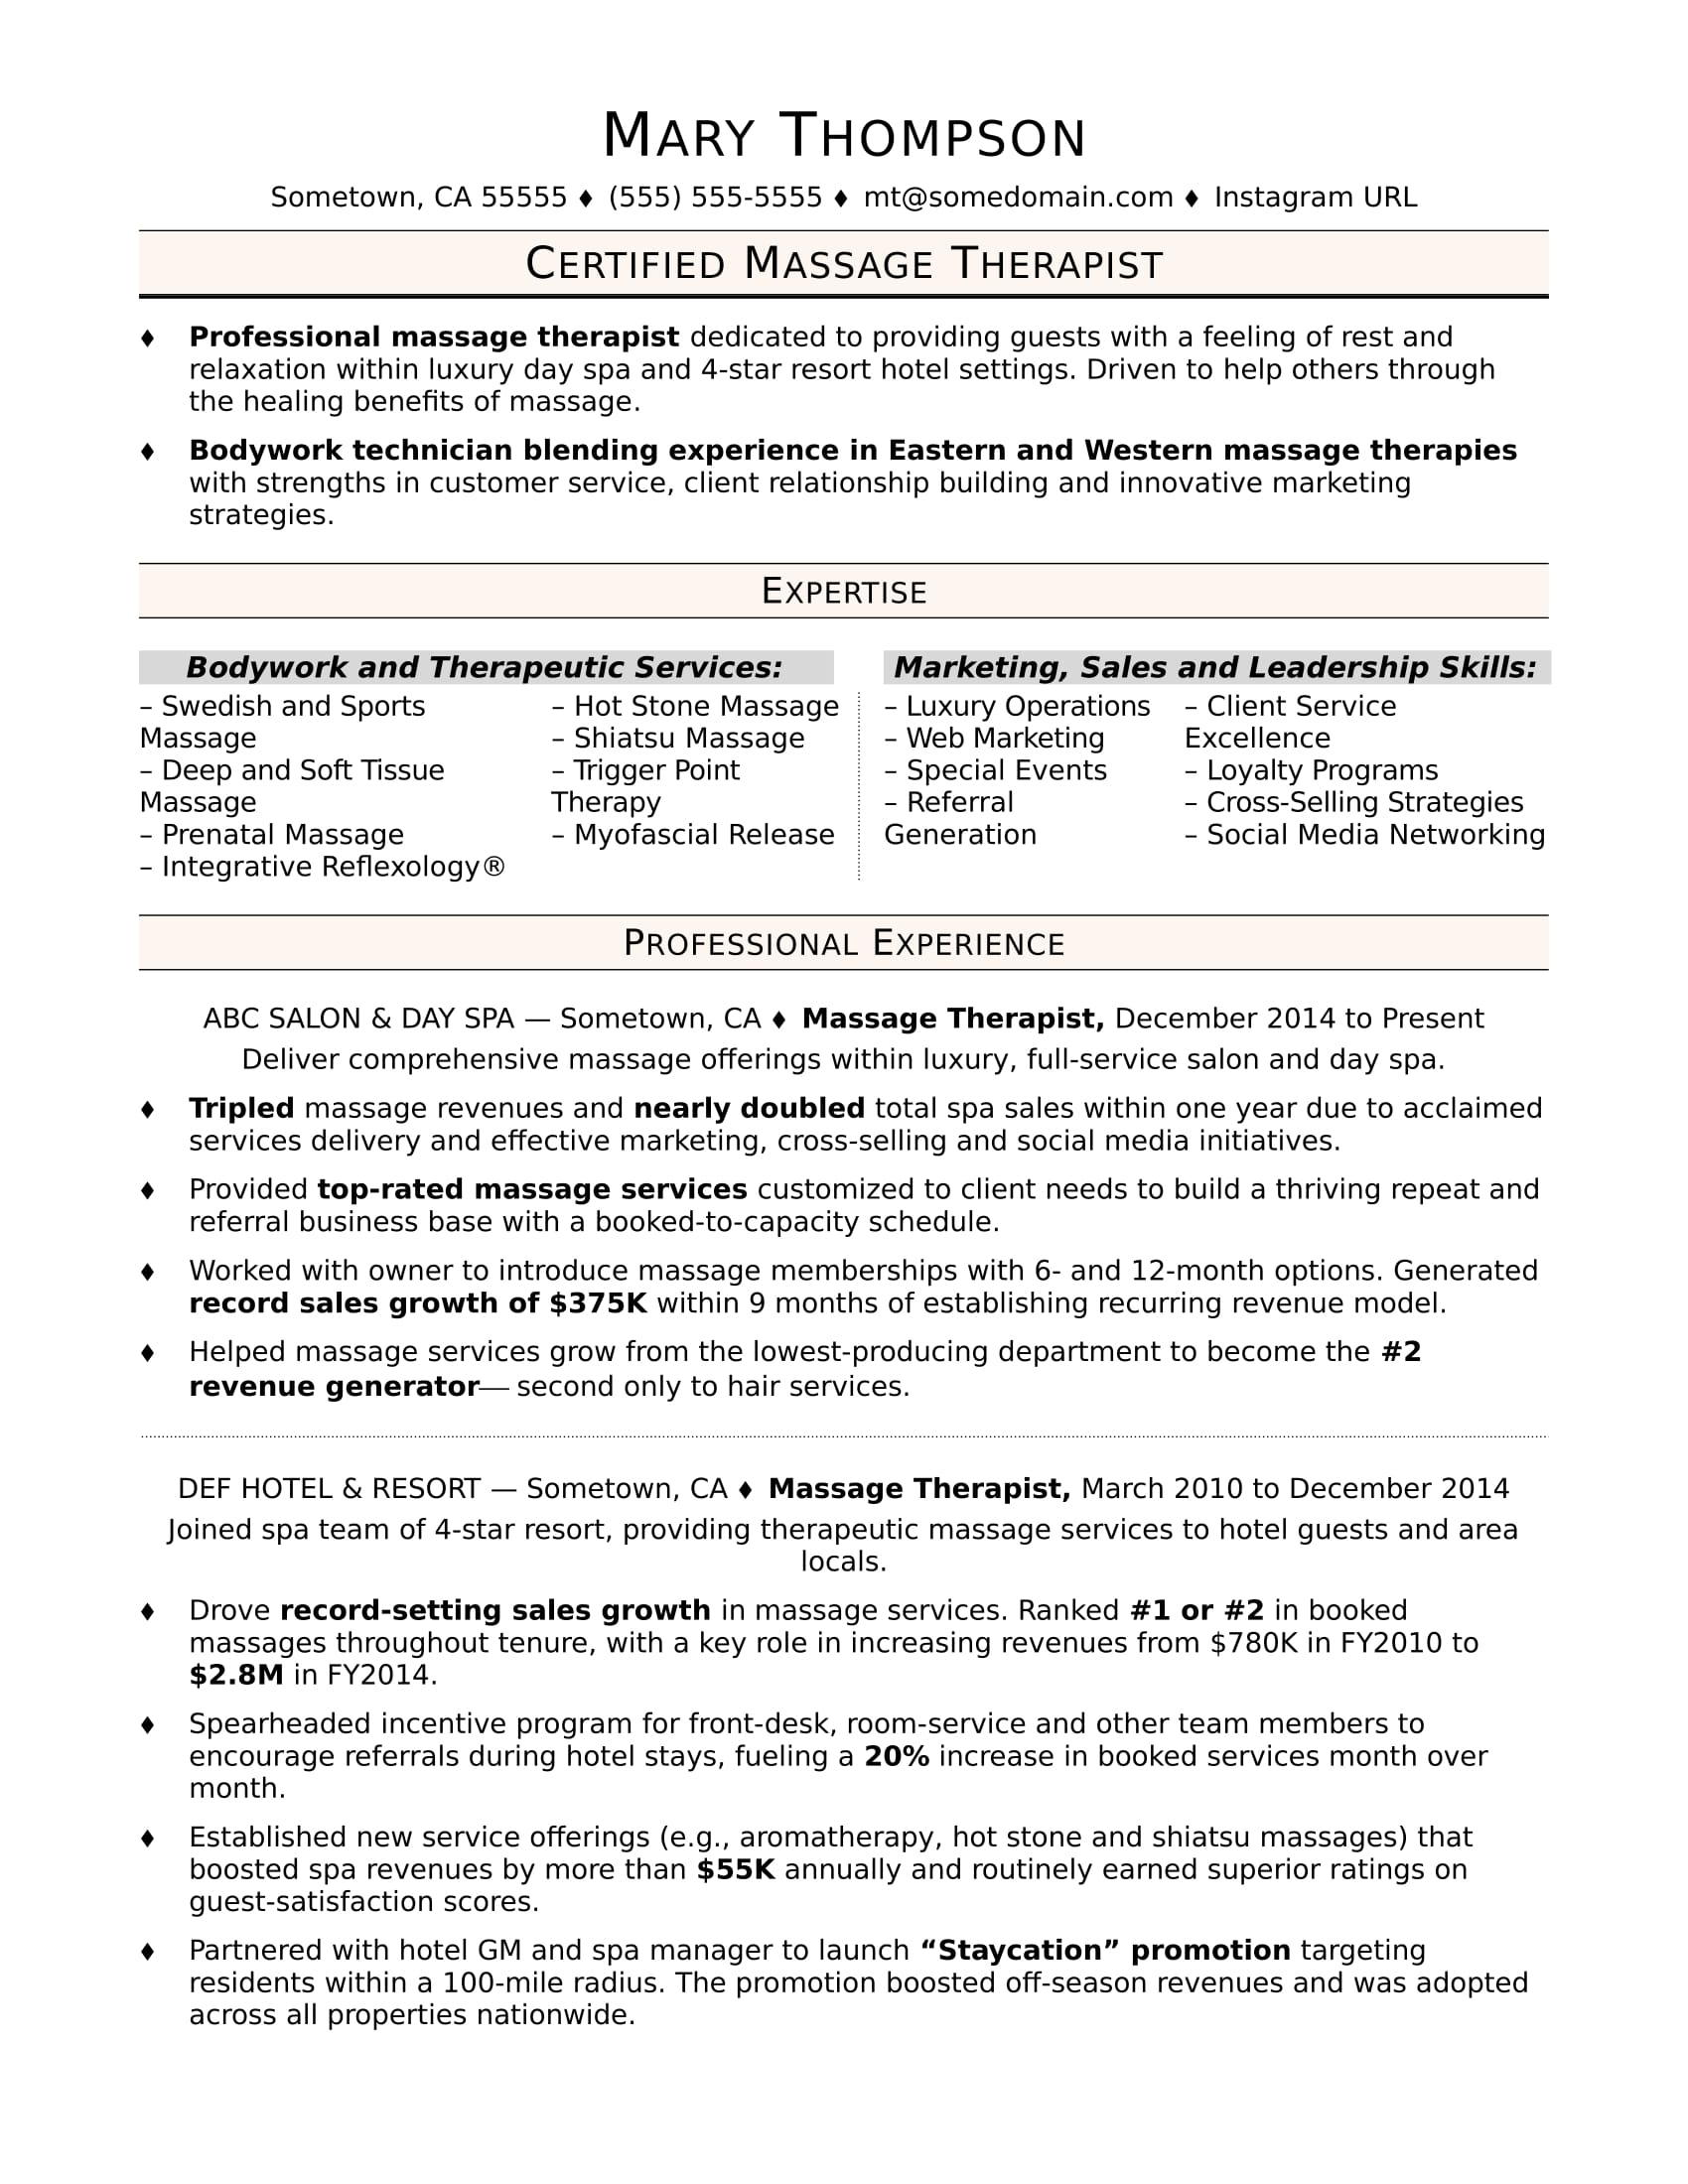 Massage Therapist Resume Sample | Monster.com